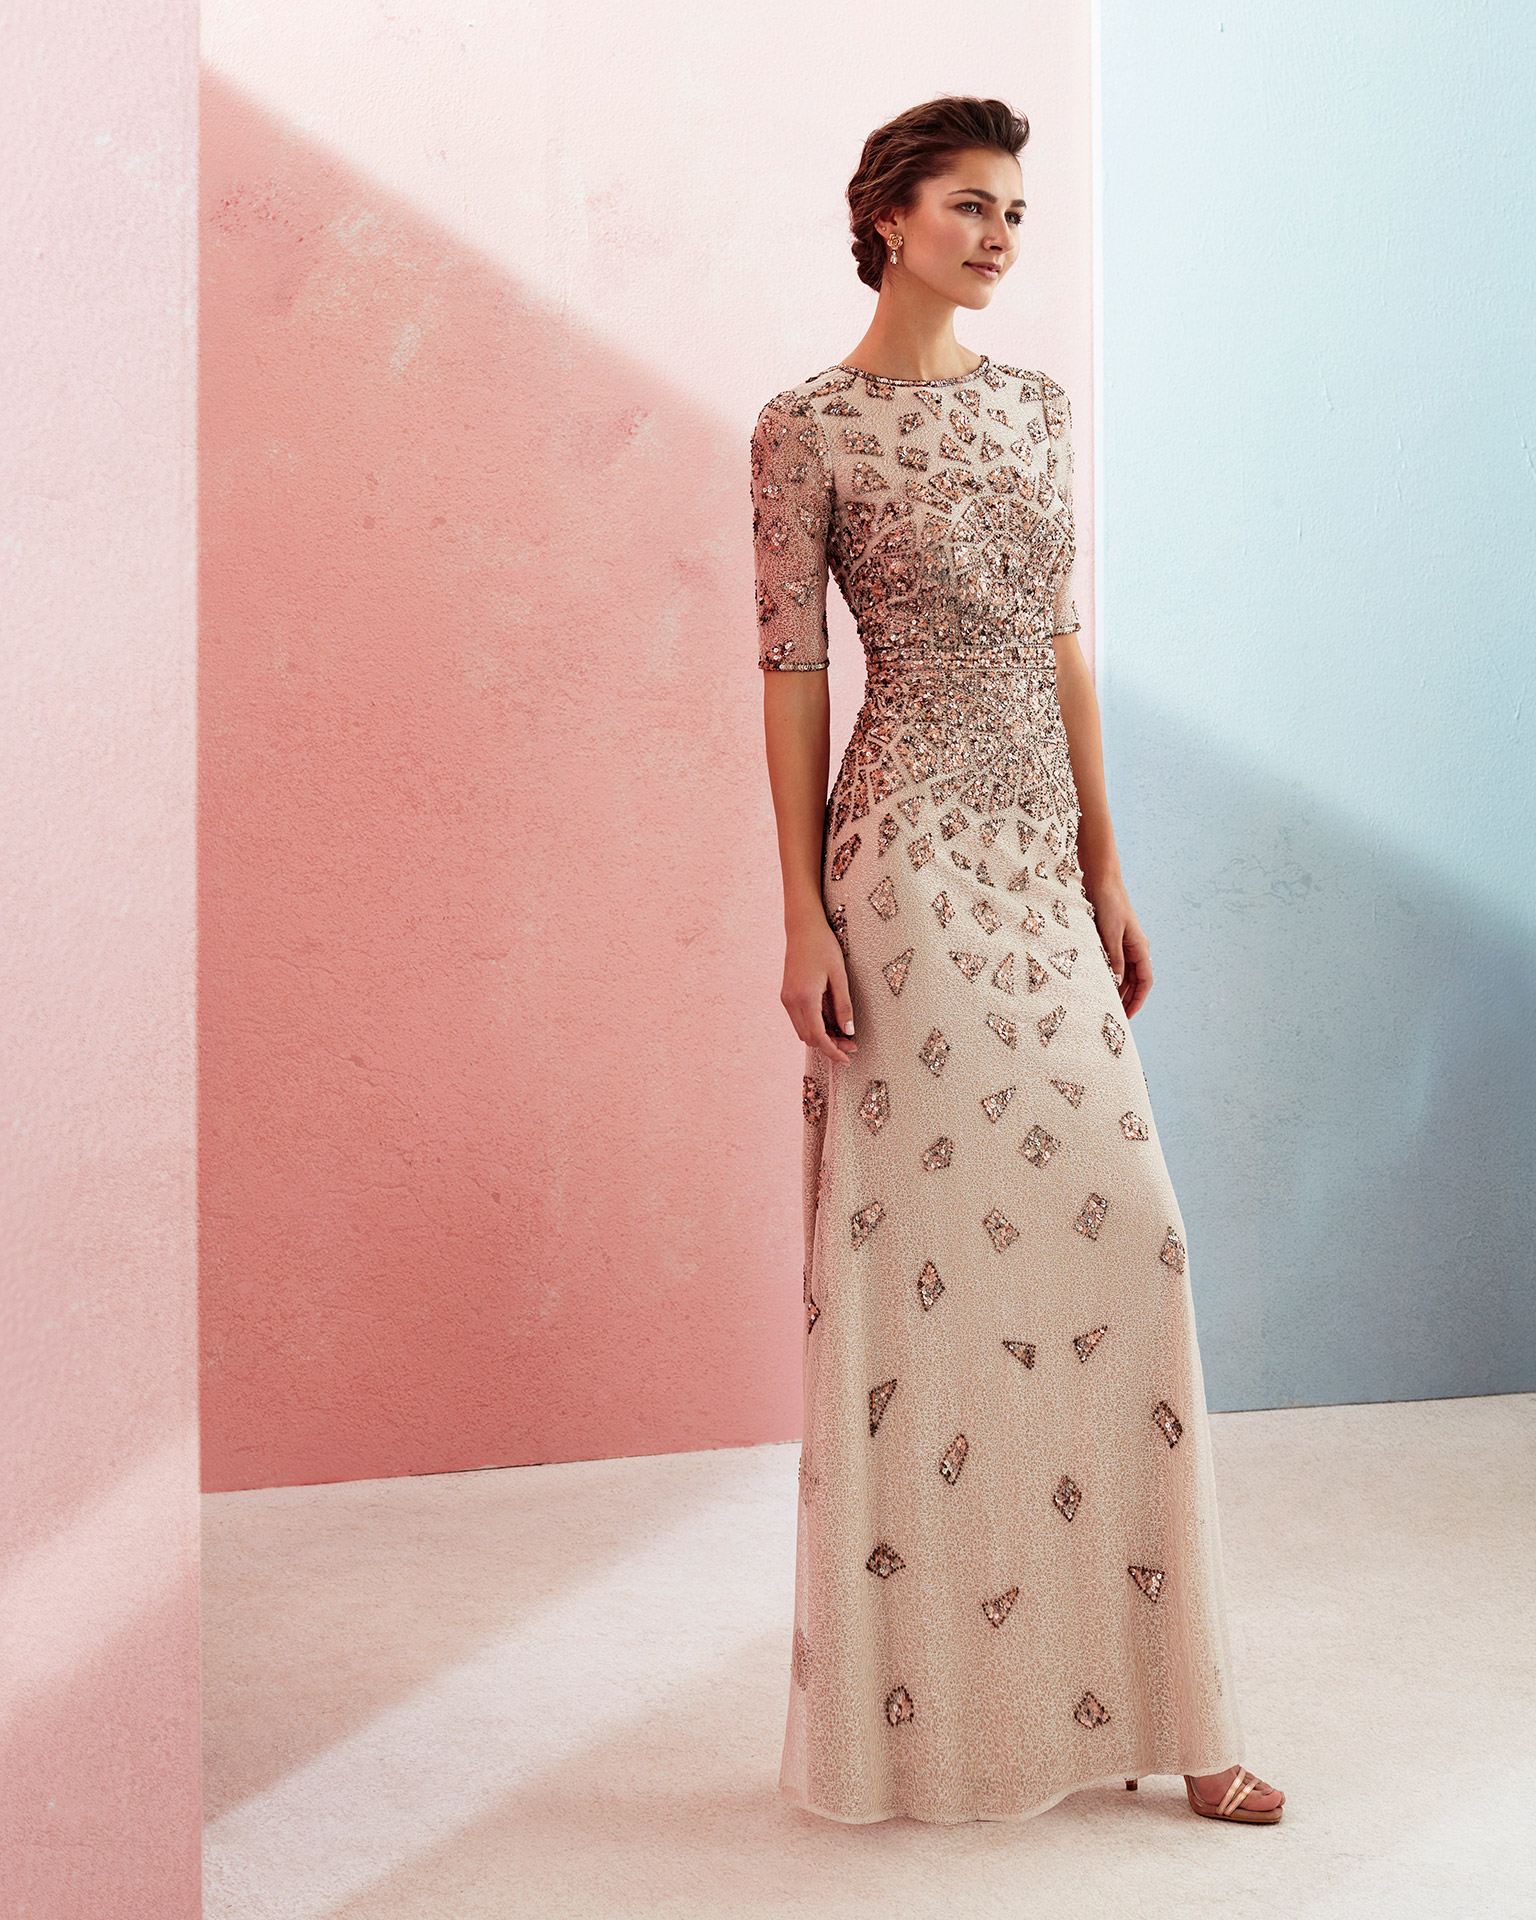 Long beaded cocktail dress with three-quarter sleeves and low back. Available in pink and beige. 2018 MARFIL BARCELONA Collection.